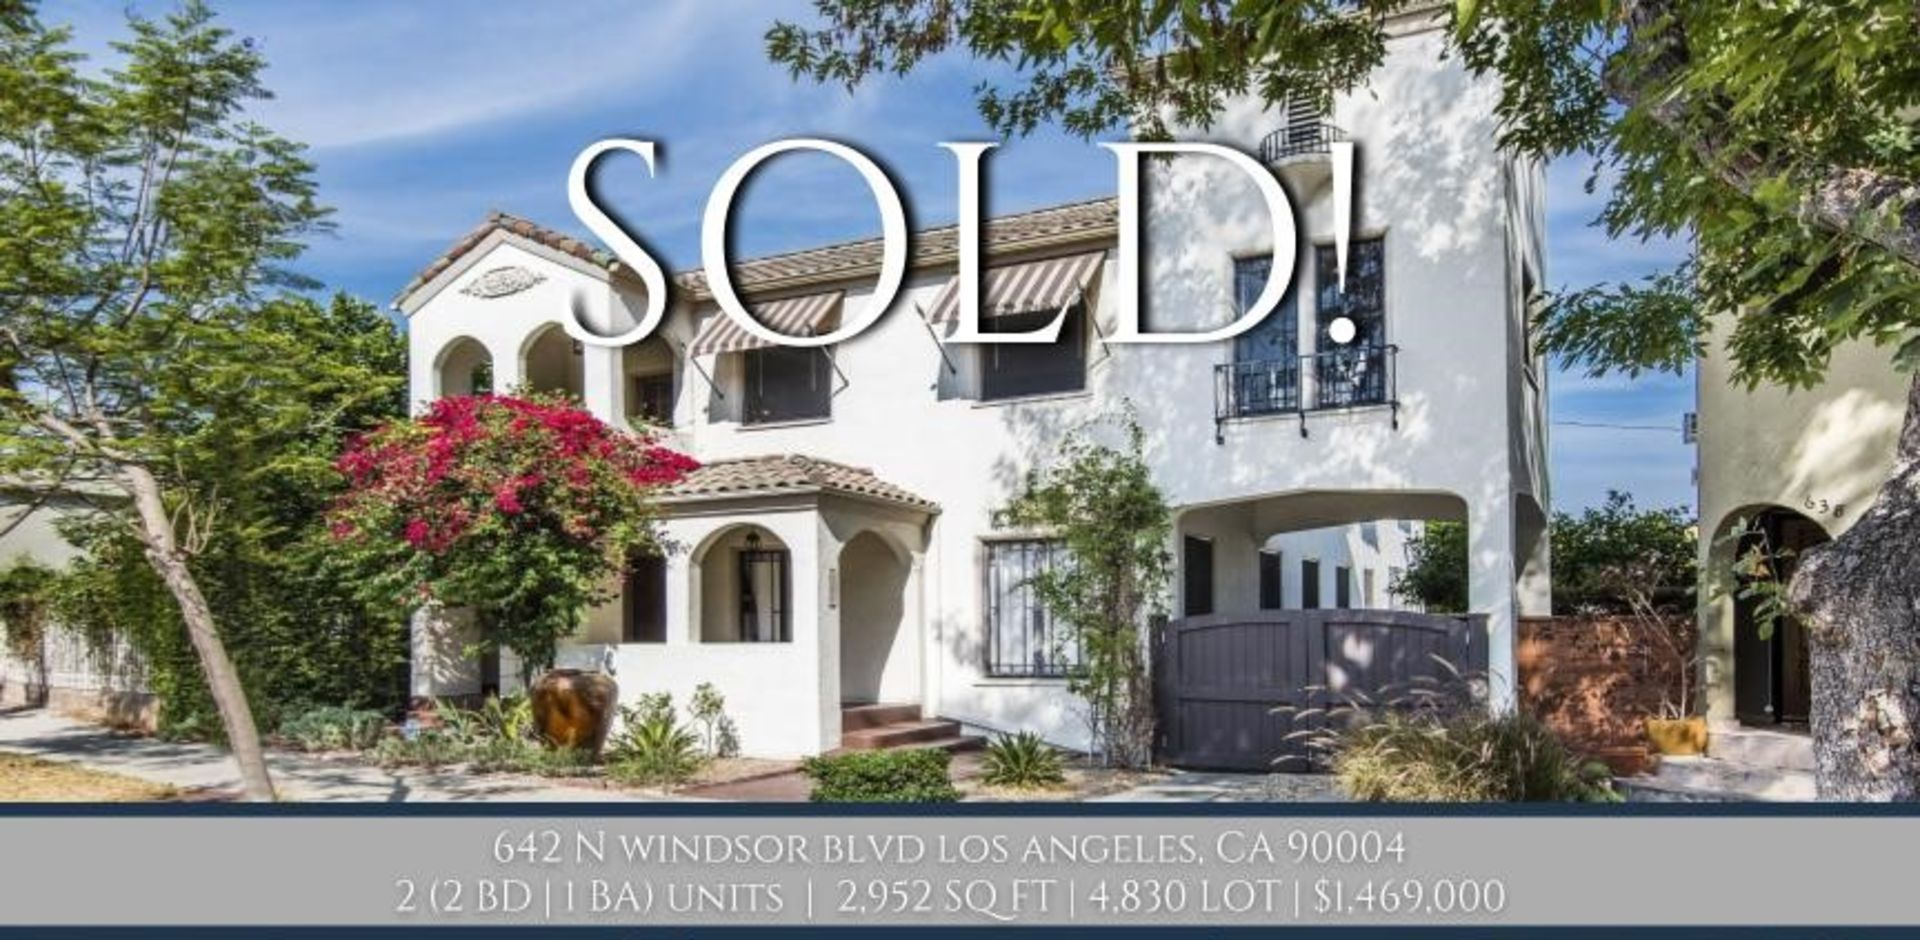 SOLD!! Charming 1925 Spanish Character Duplex in Windsor Square!